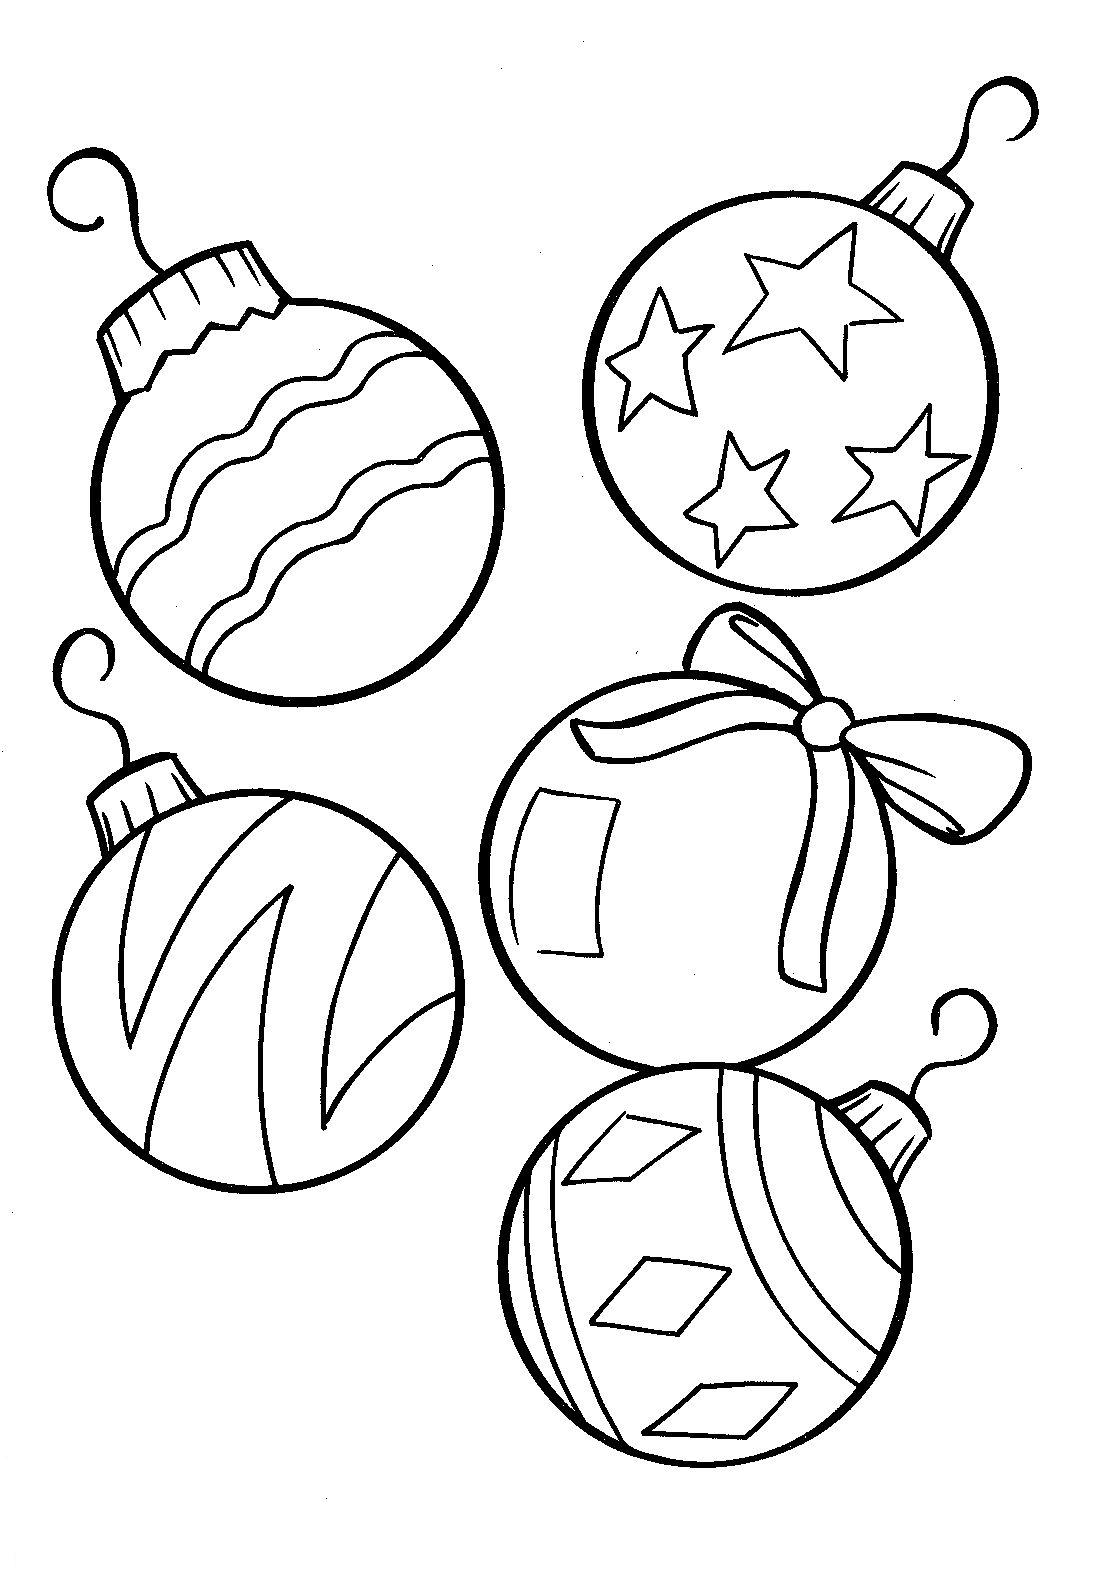 Christmas Ornaments Coloring Pages Printable With Ornament Is Great And Very Nice Page